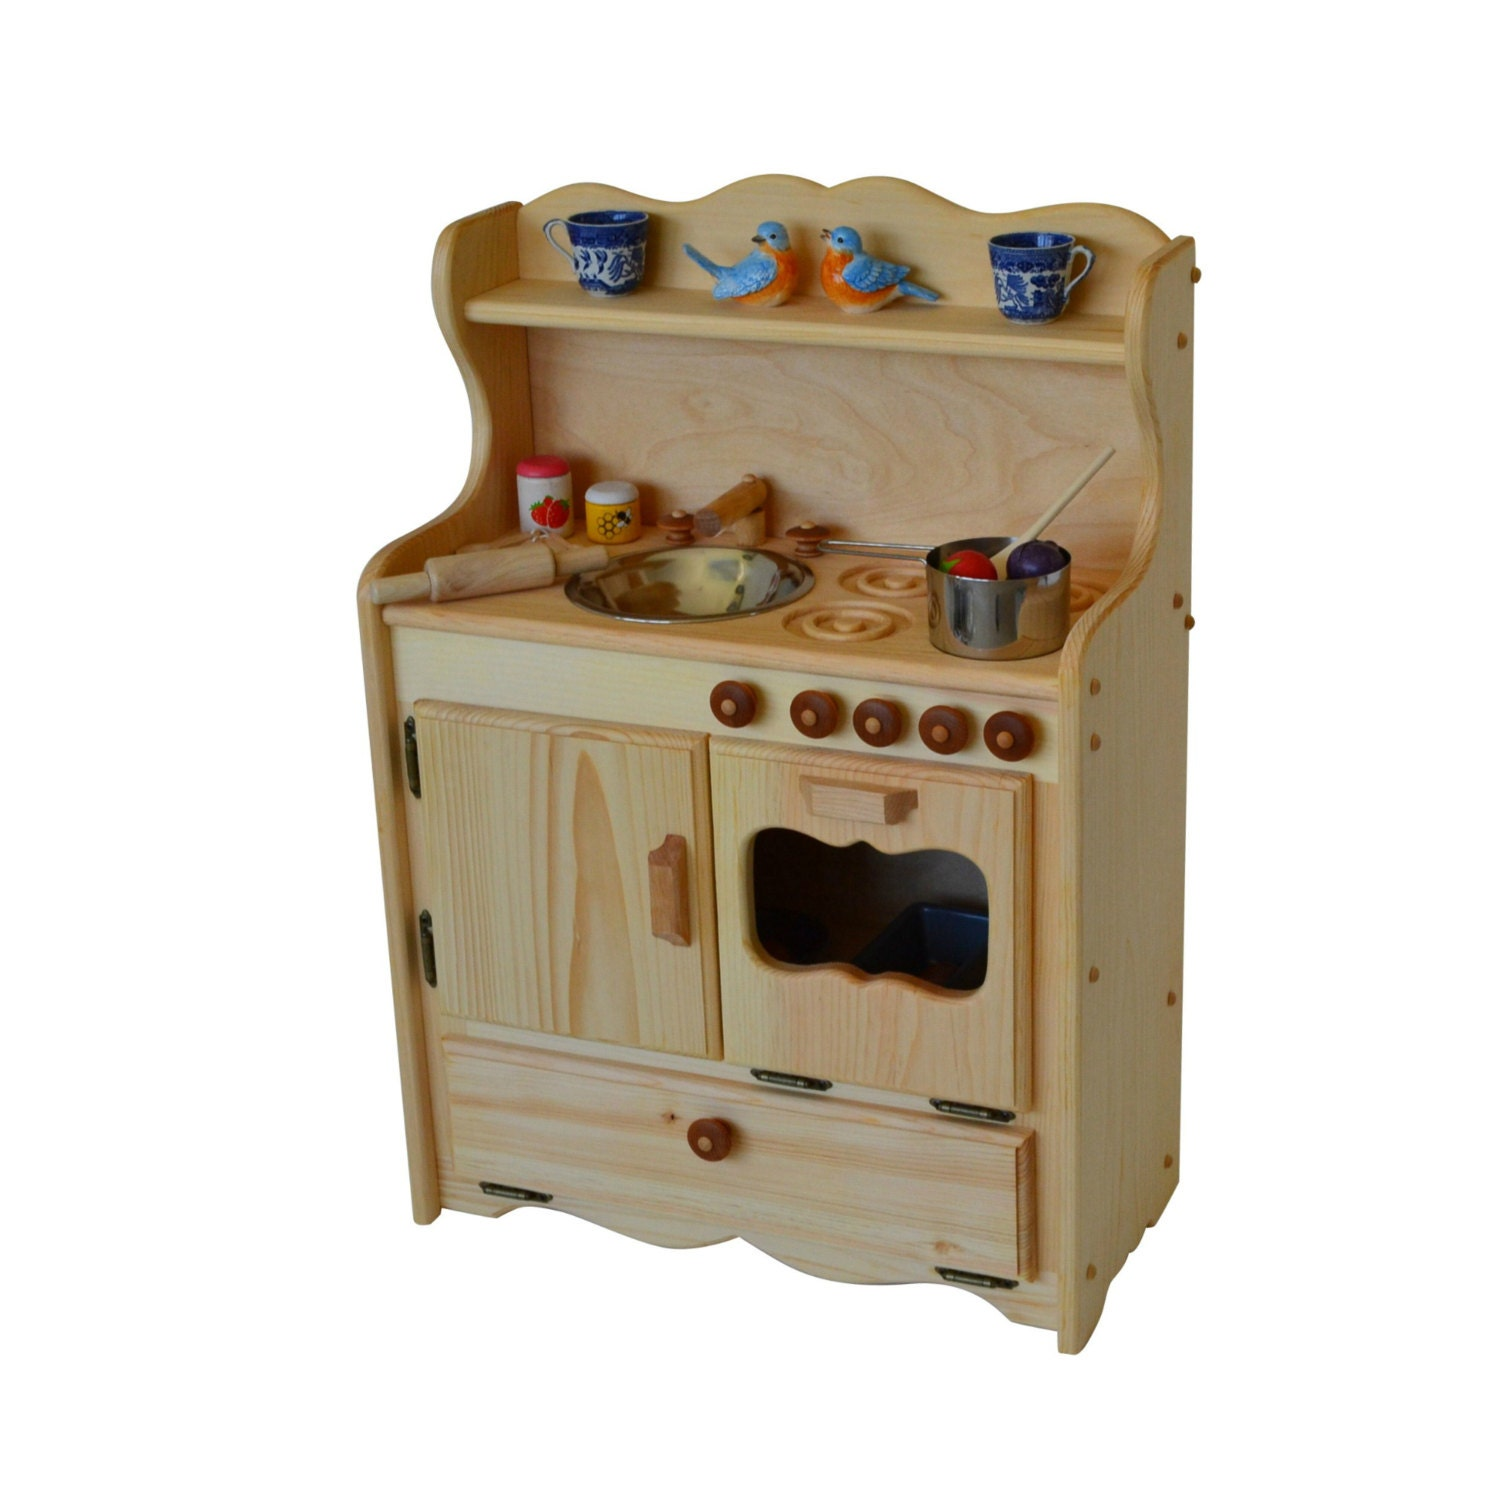 Child's Natural Wooden Play Kitchen-Wooden Play